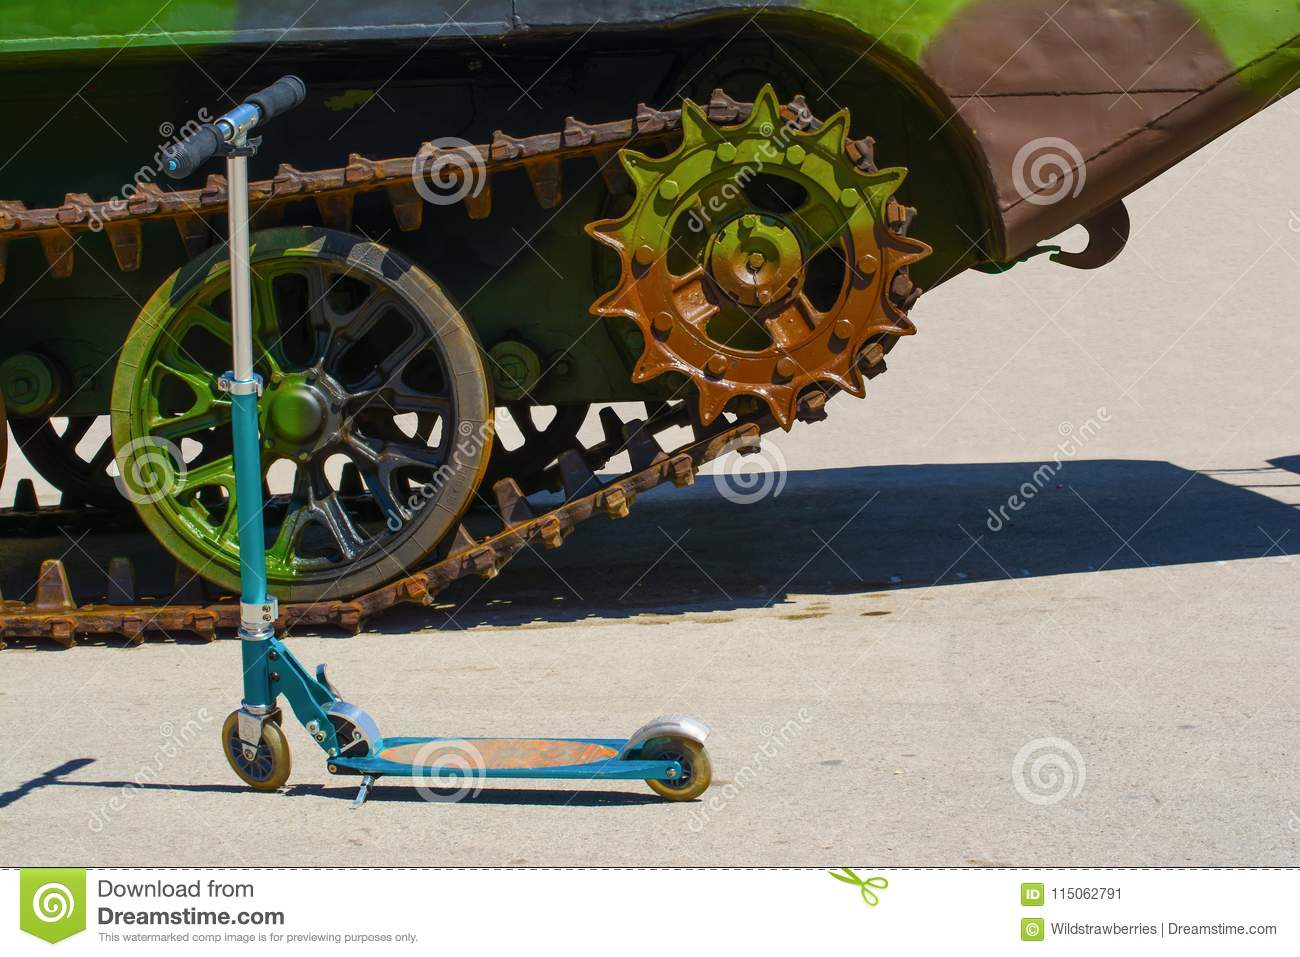 Kids Scooter A Caterpillar Track Of A Military Vehicle Stock Image Image Of Gears Middle 115062791